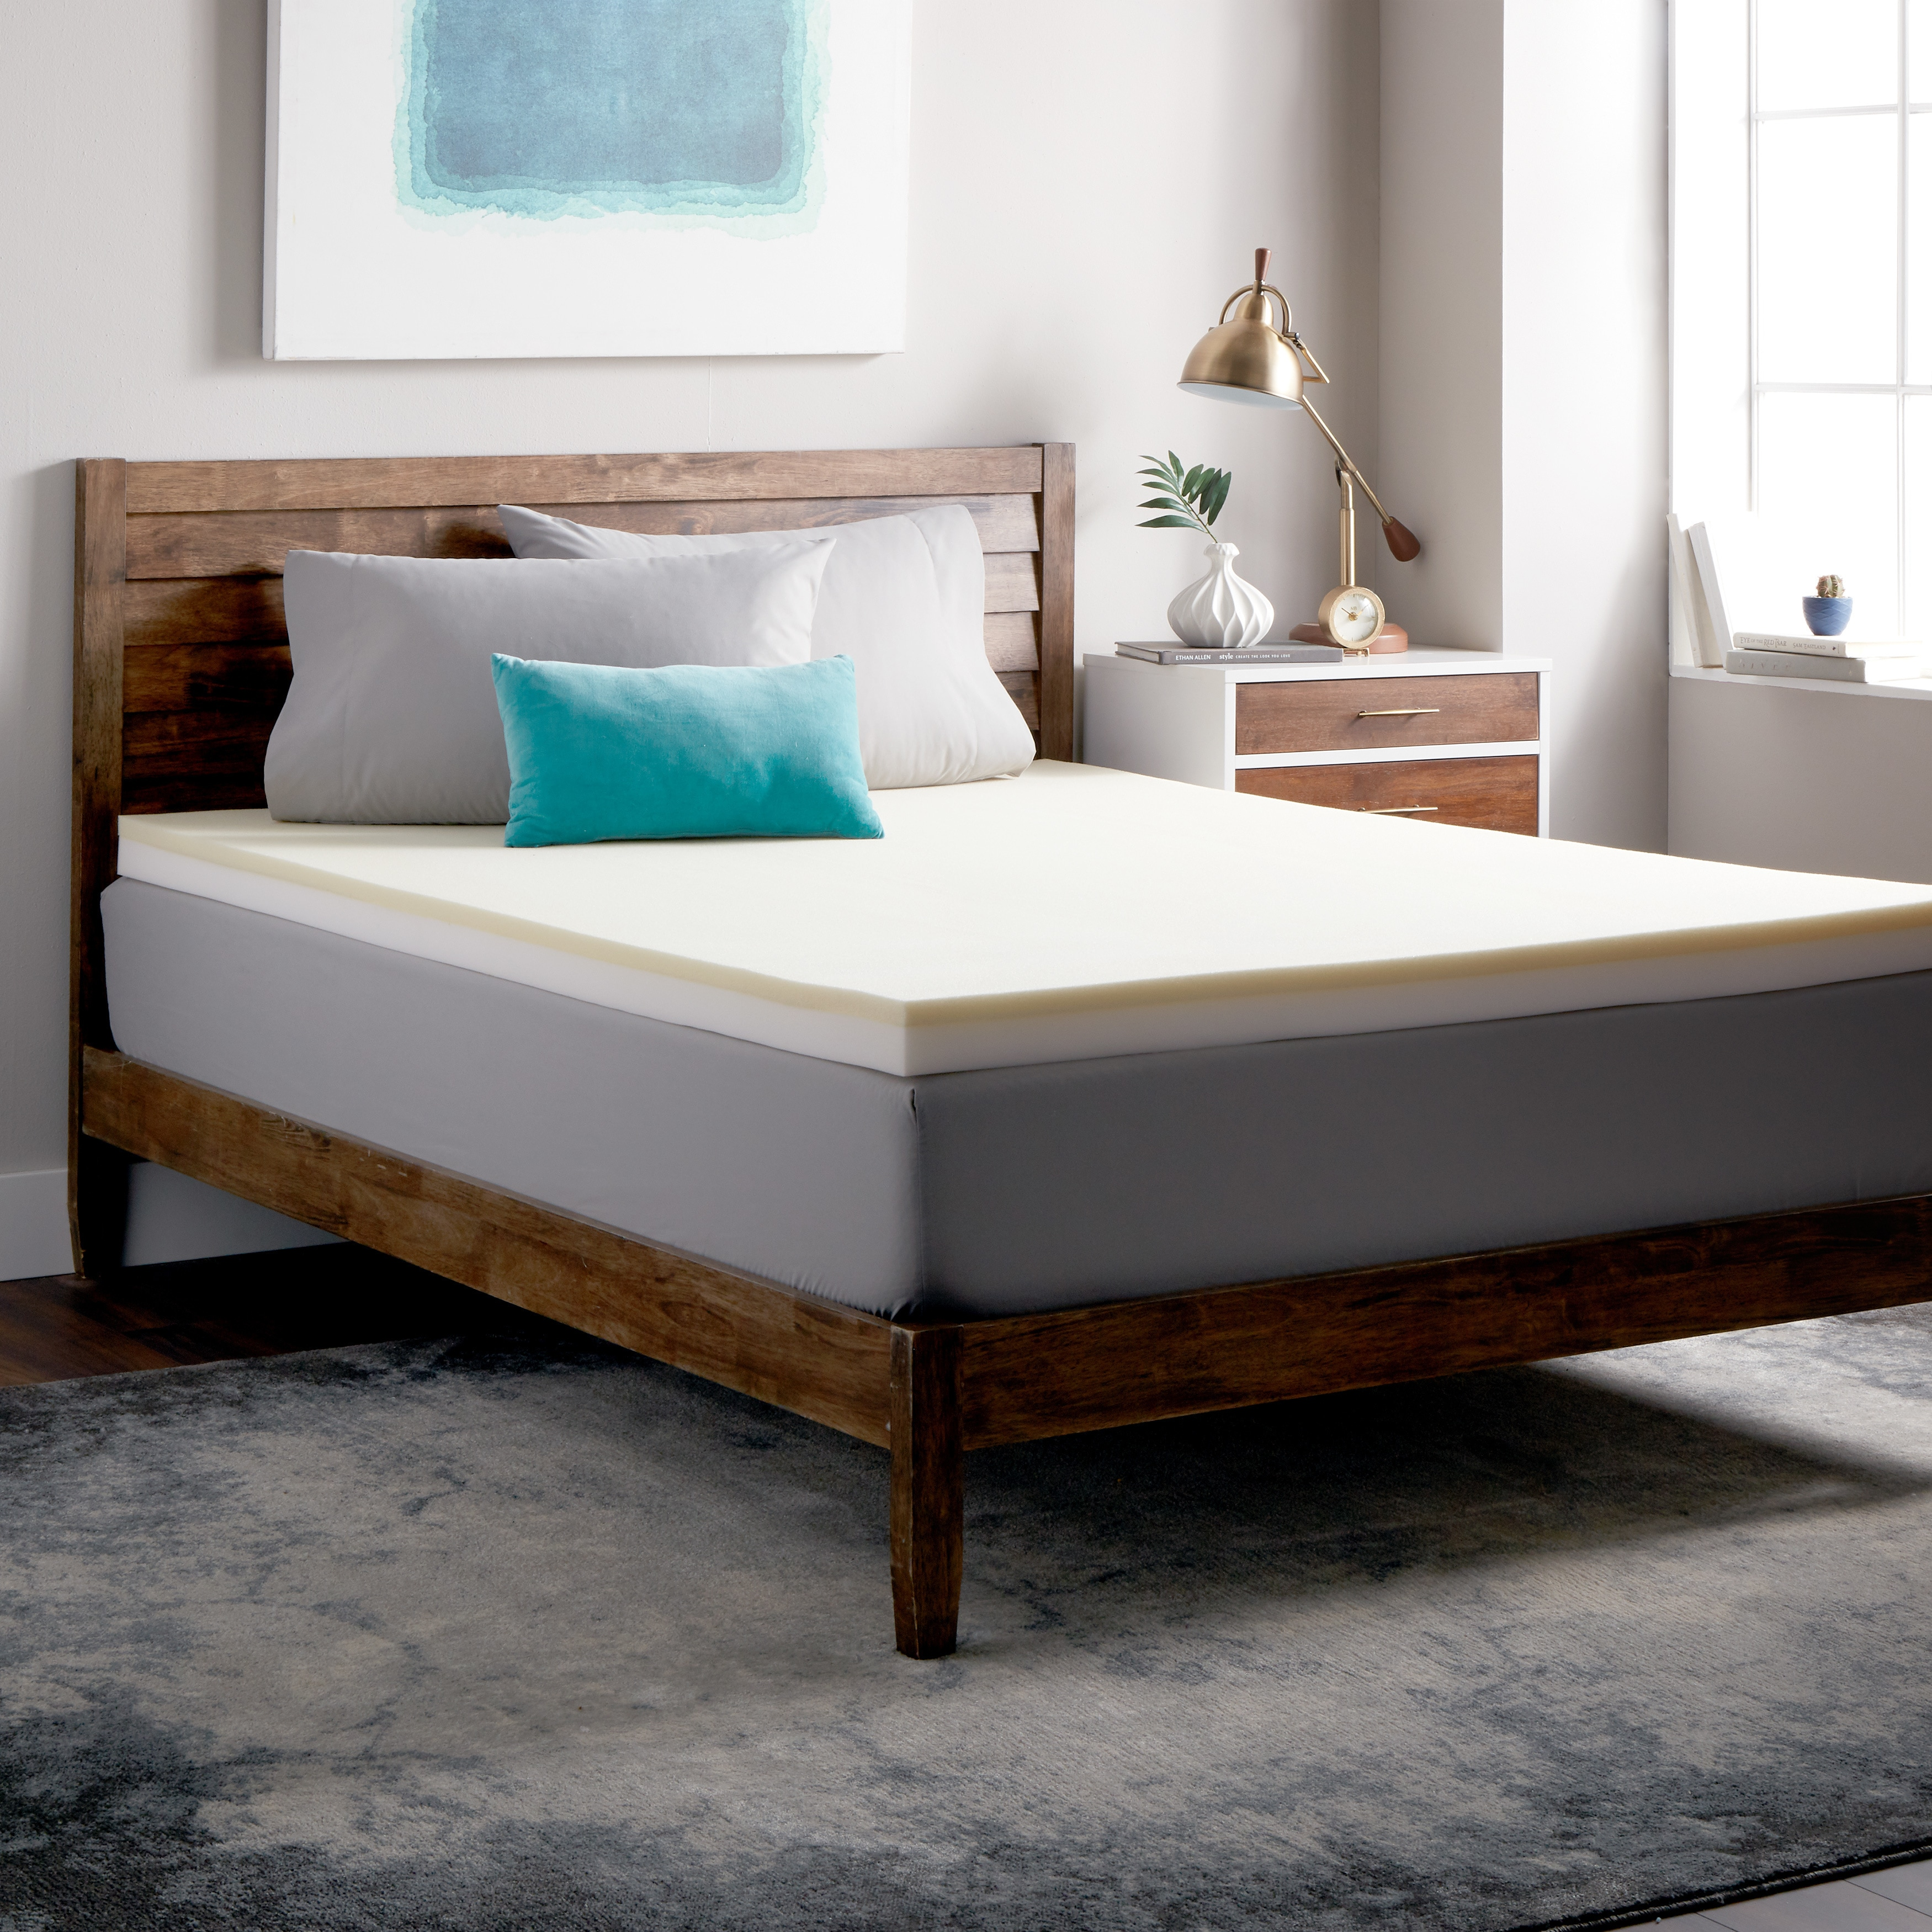 Select Luxury Restore-a-Mattress 3-inch Memory Foam Mattress Topper at Sears.com